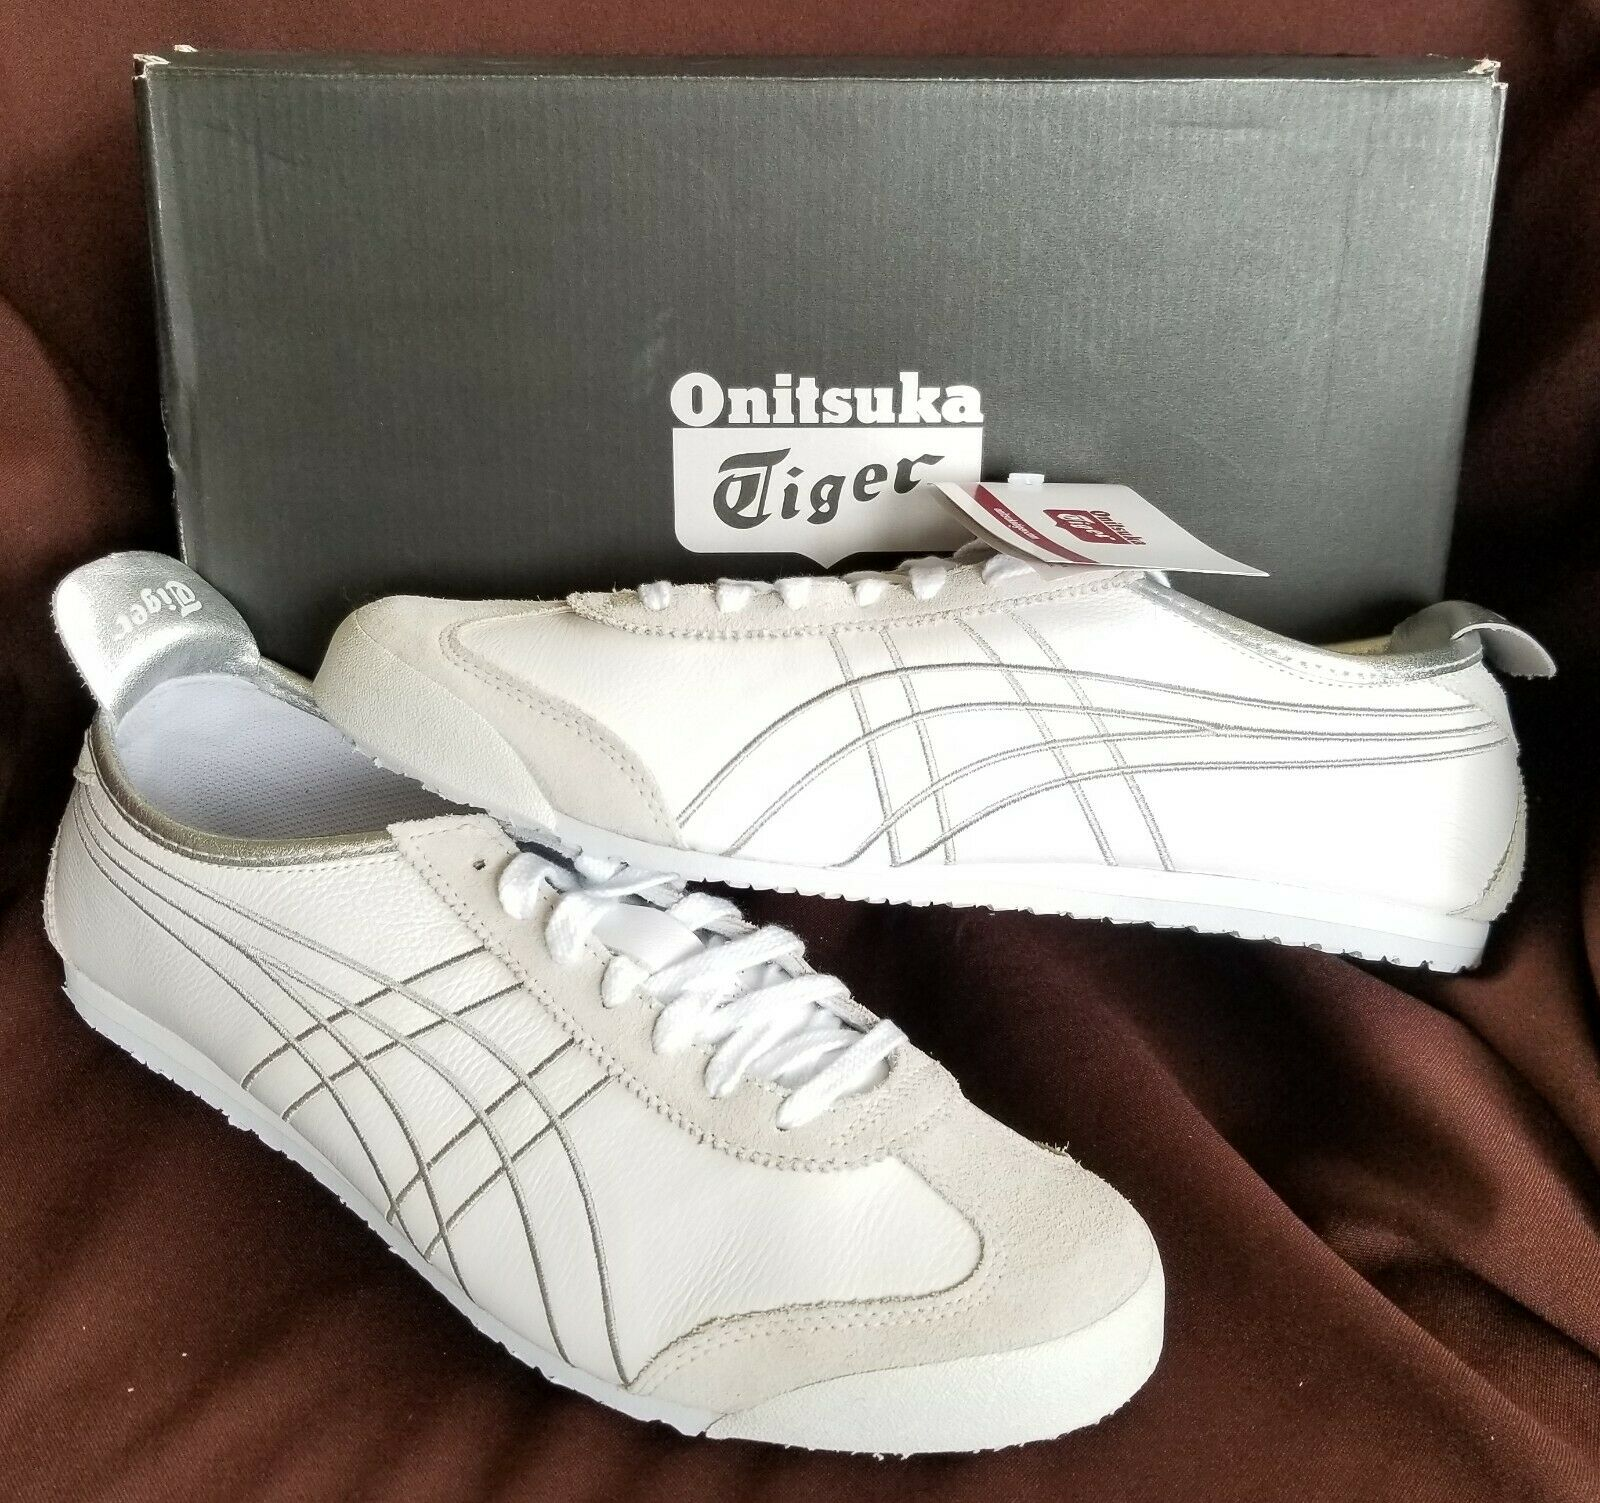 Asics Onitsuka Tiger Mexico 66 White Silver Retro Running shoes 1183A349-100